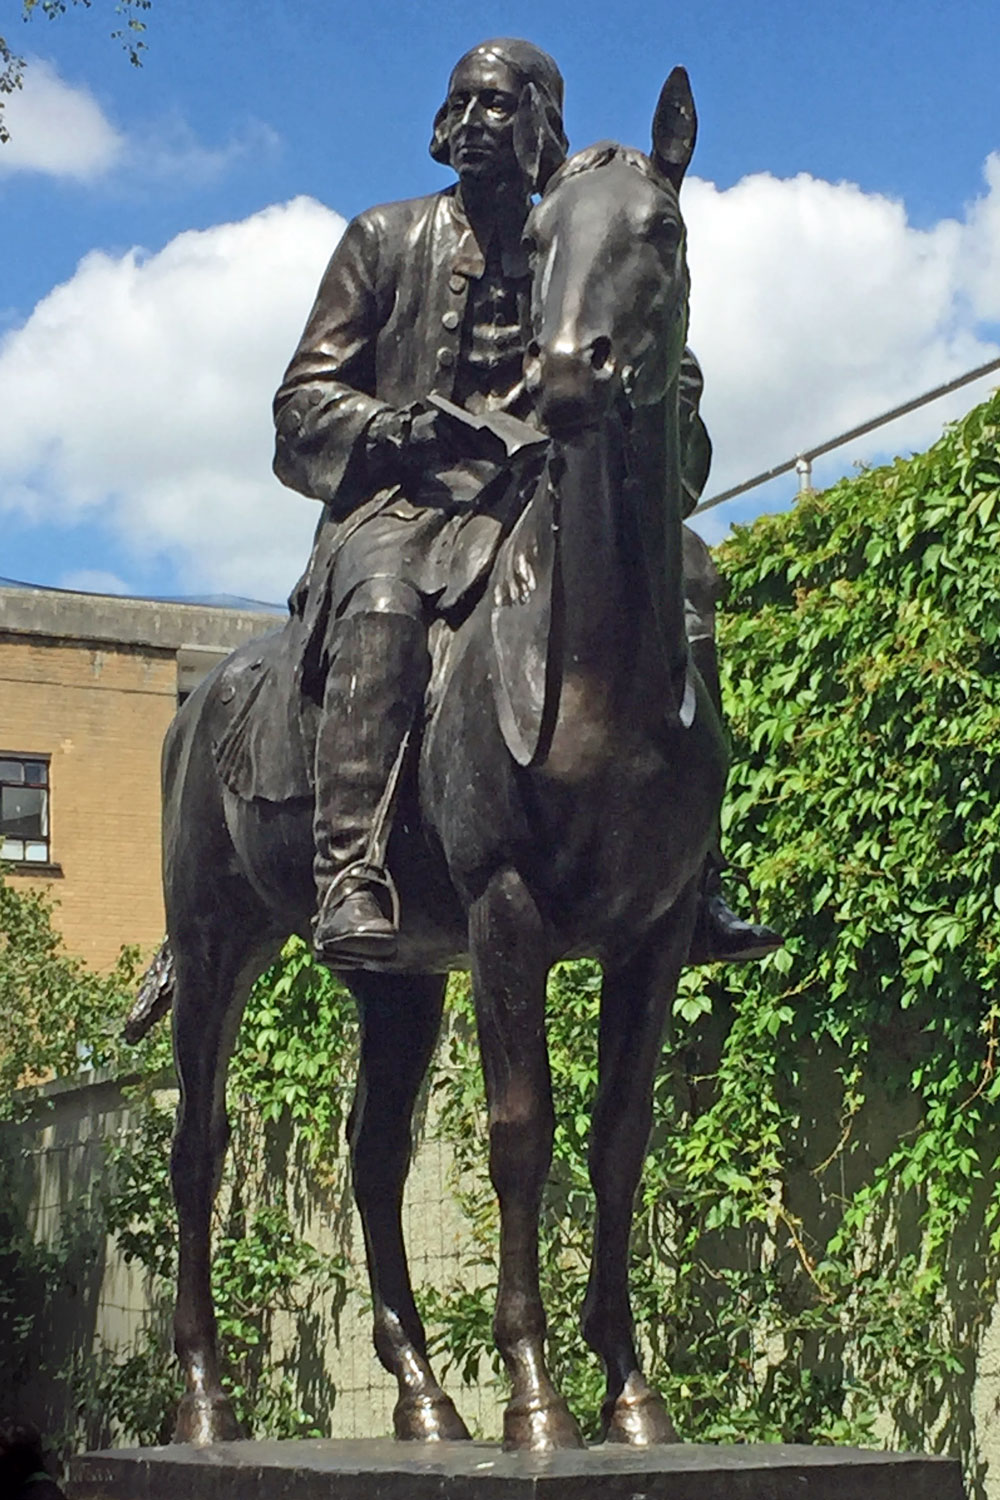 John Wesley spent a great deal of time on horseback, traveling around England and surrounding nations.